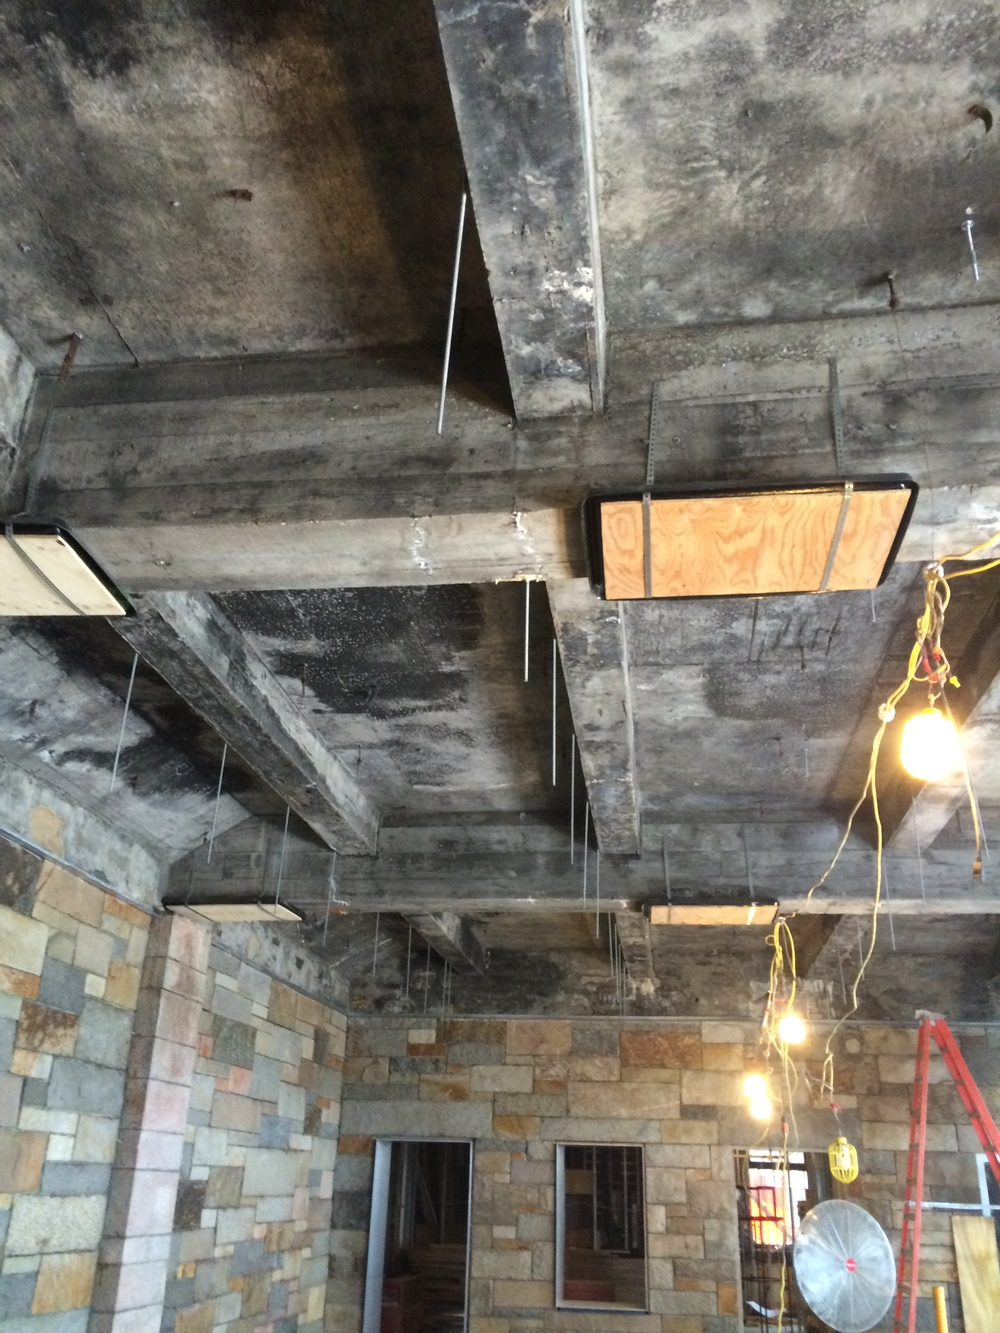 Ceiling rods have been anchored to the beams, ready to receive the ceiling structure.